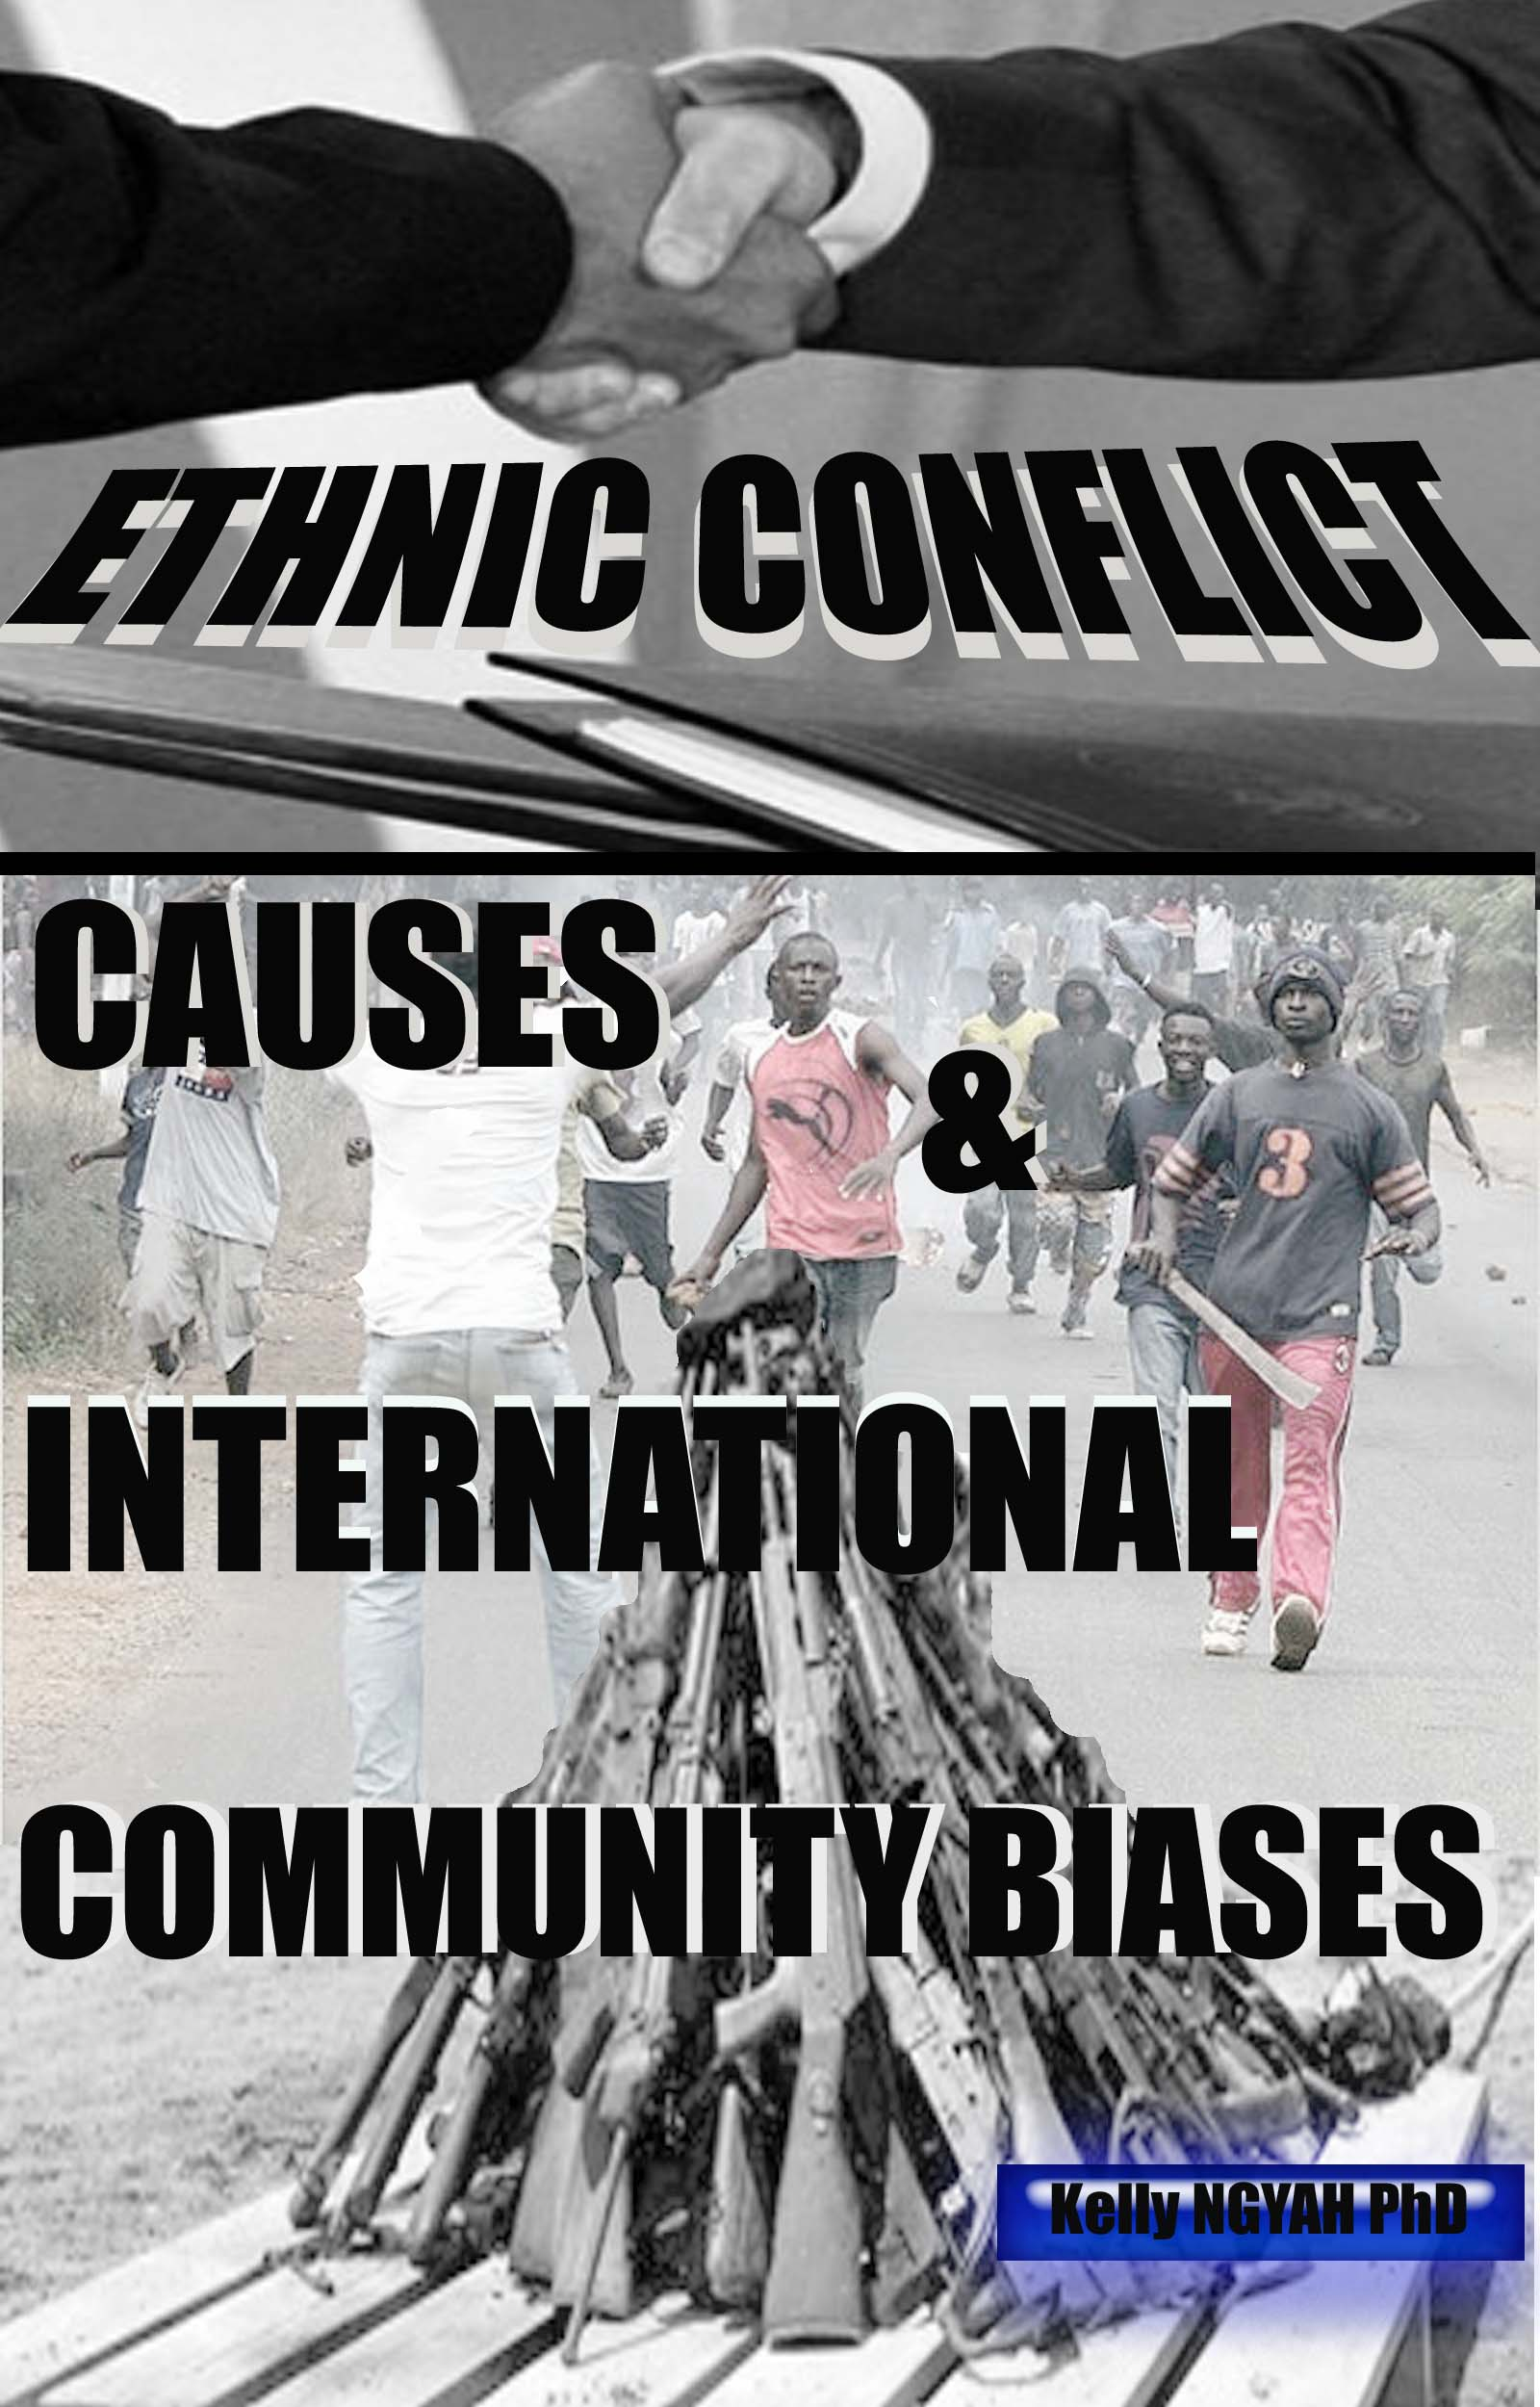 ETHNIC CONFLICT CAUSES & INTERNATIONAL COMMUNITY BIA